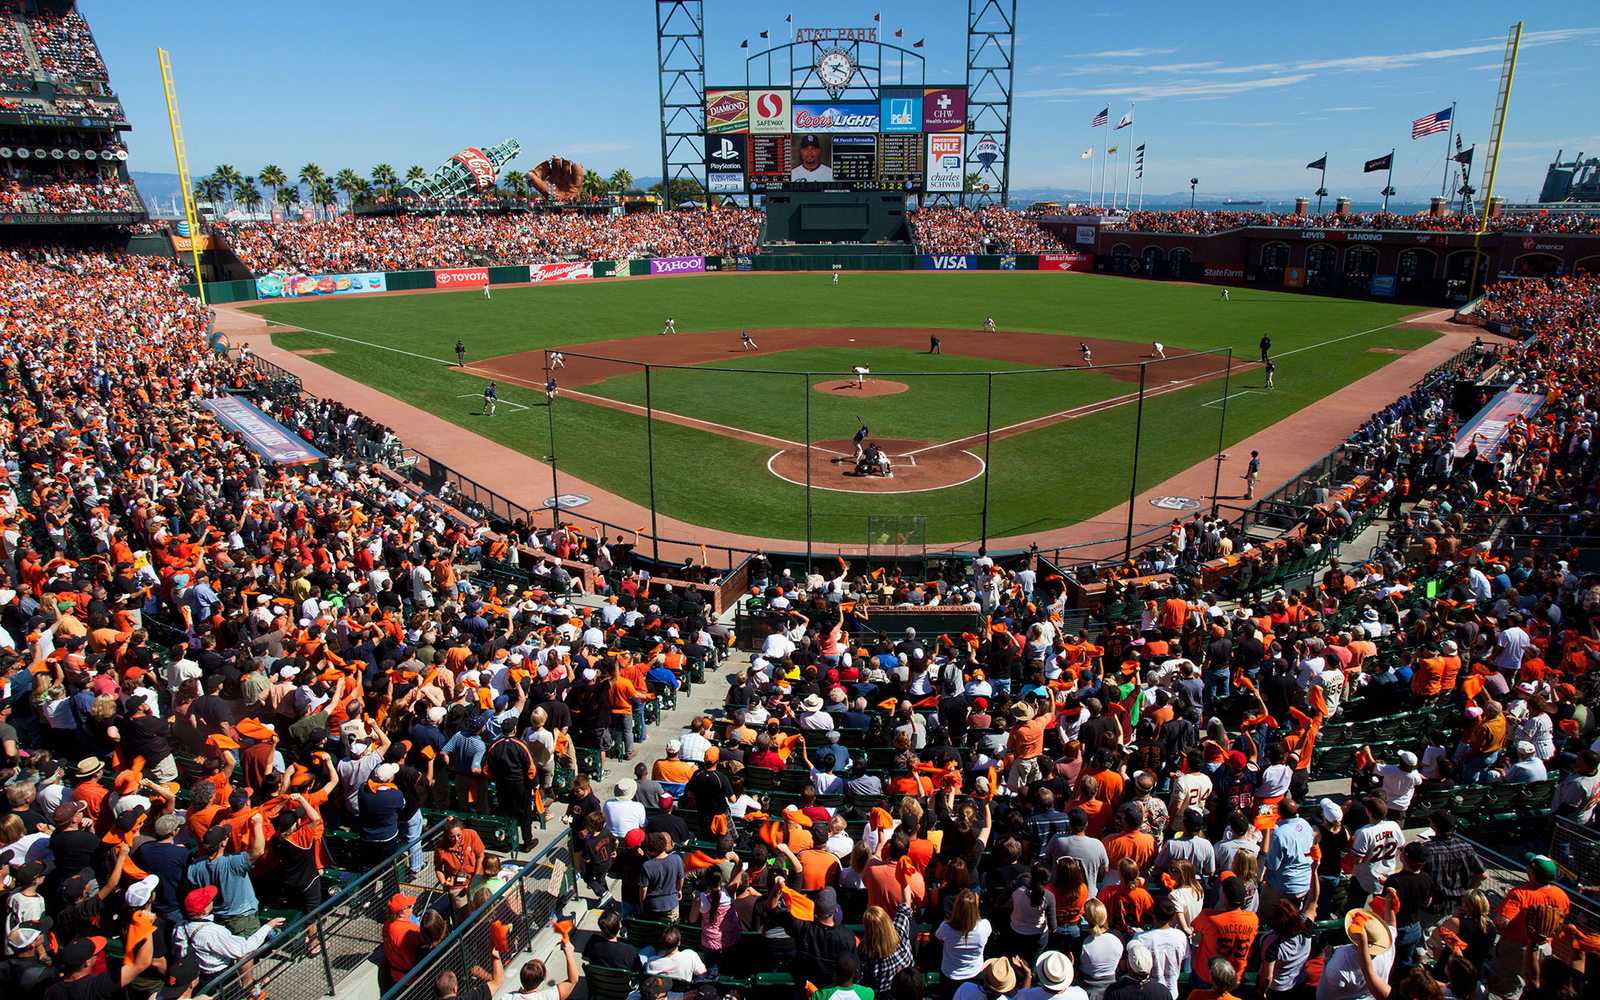 AT&T Park: San Francisco Giants